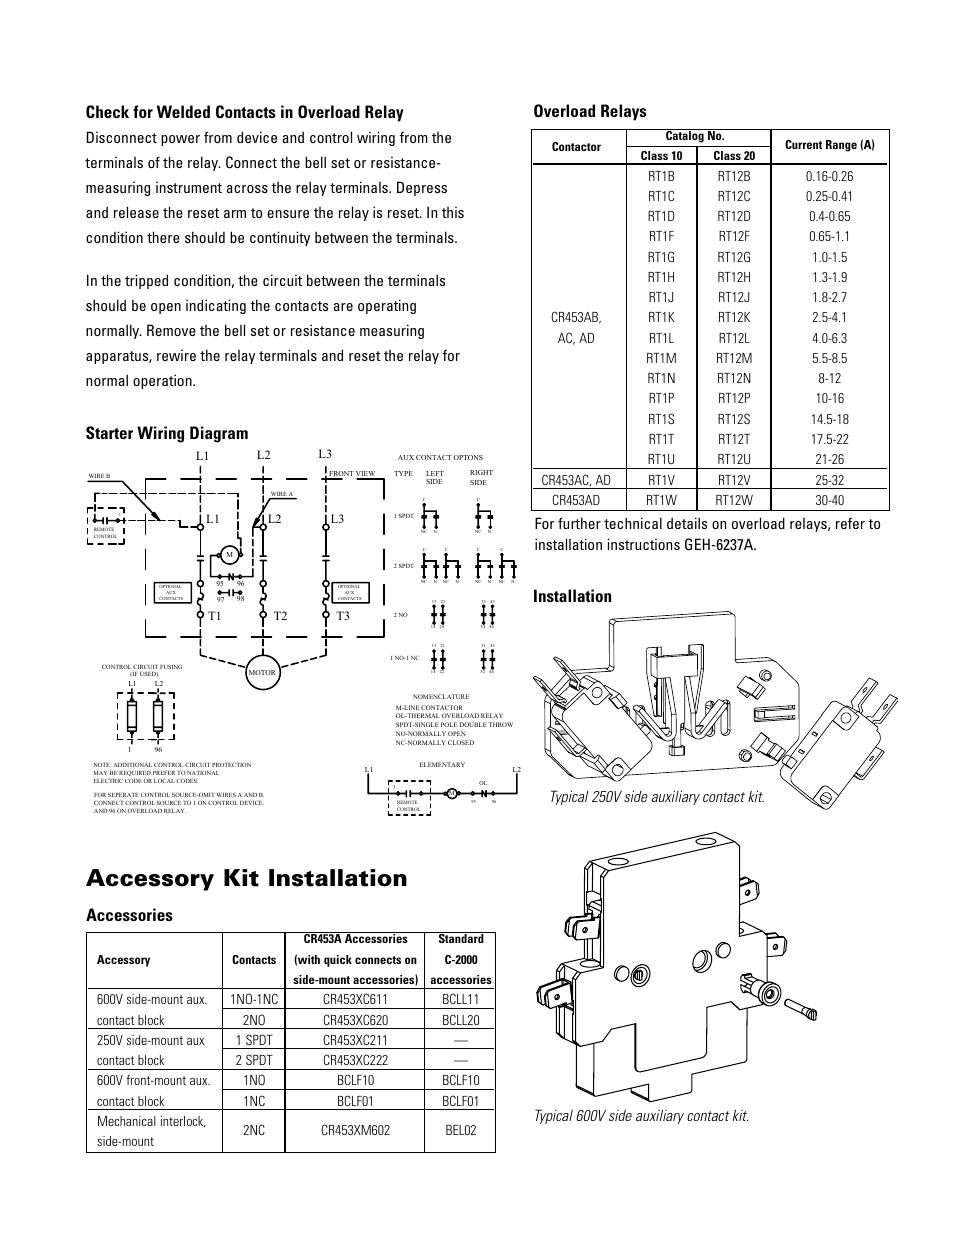 Ge Overload Relay Wiring Diagram Trusted Diagrams Rr3 Accessory Kit Installation Relays Starter Industrial Control